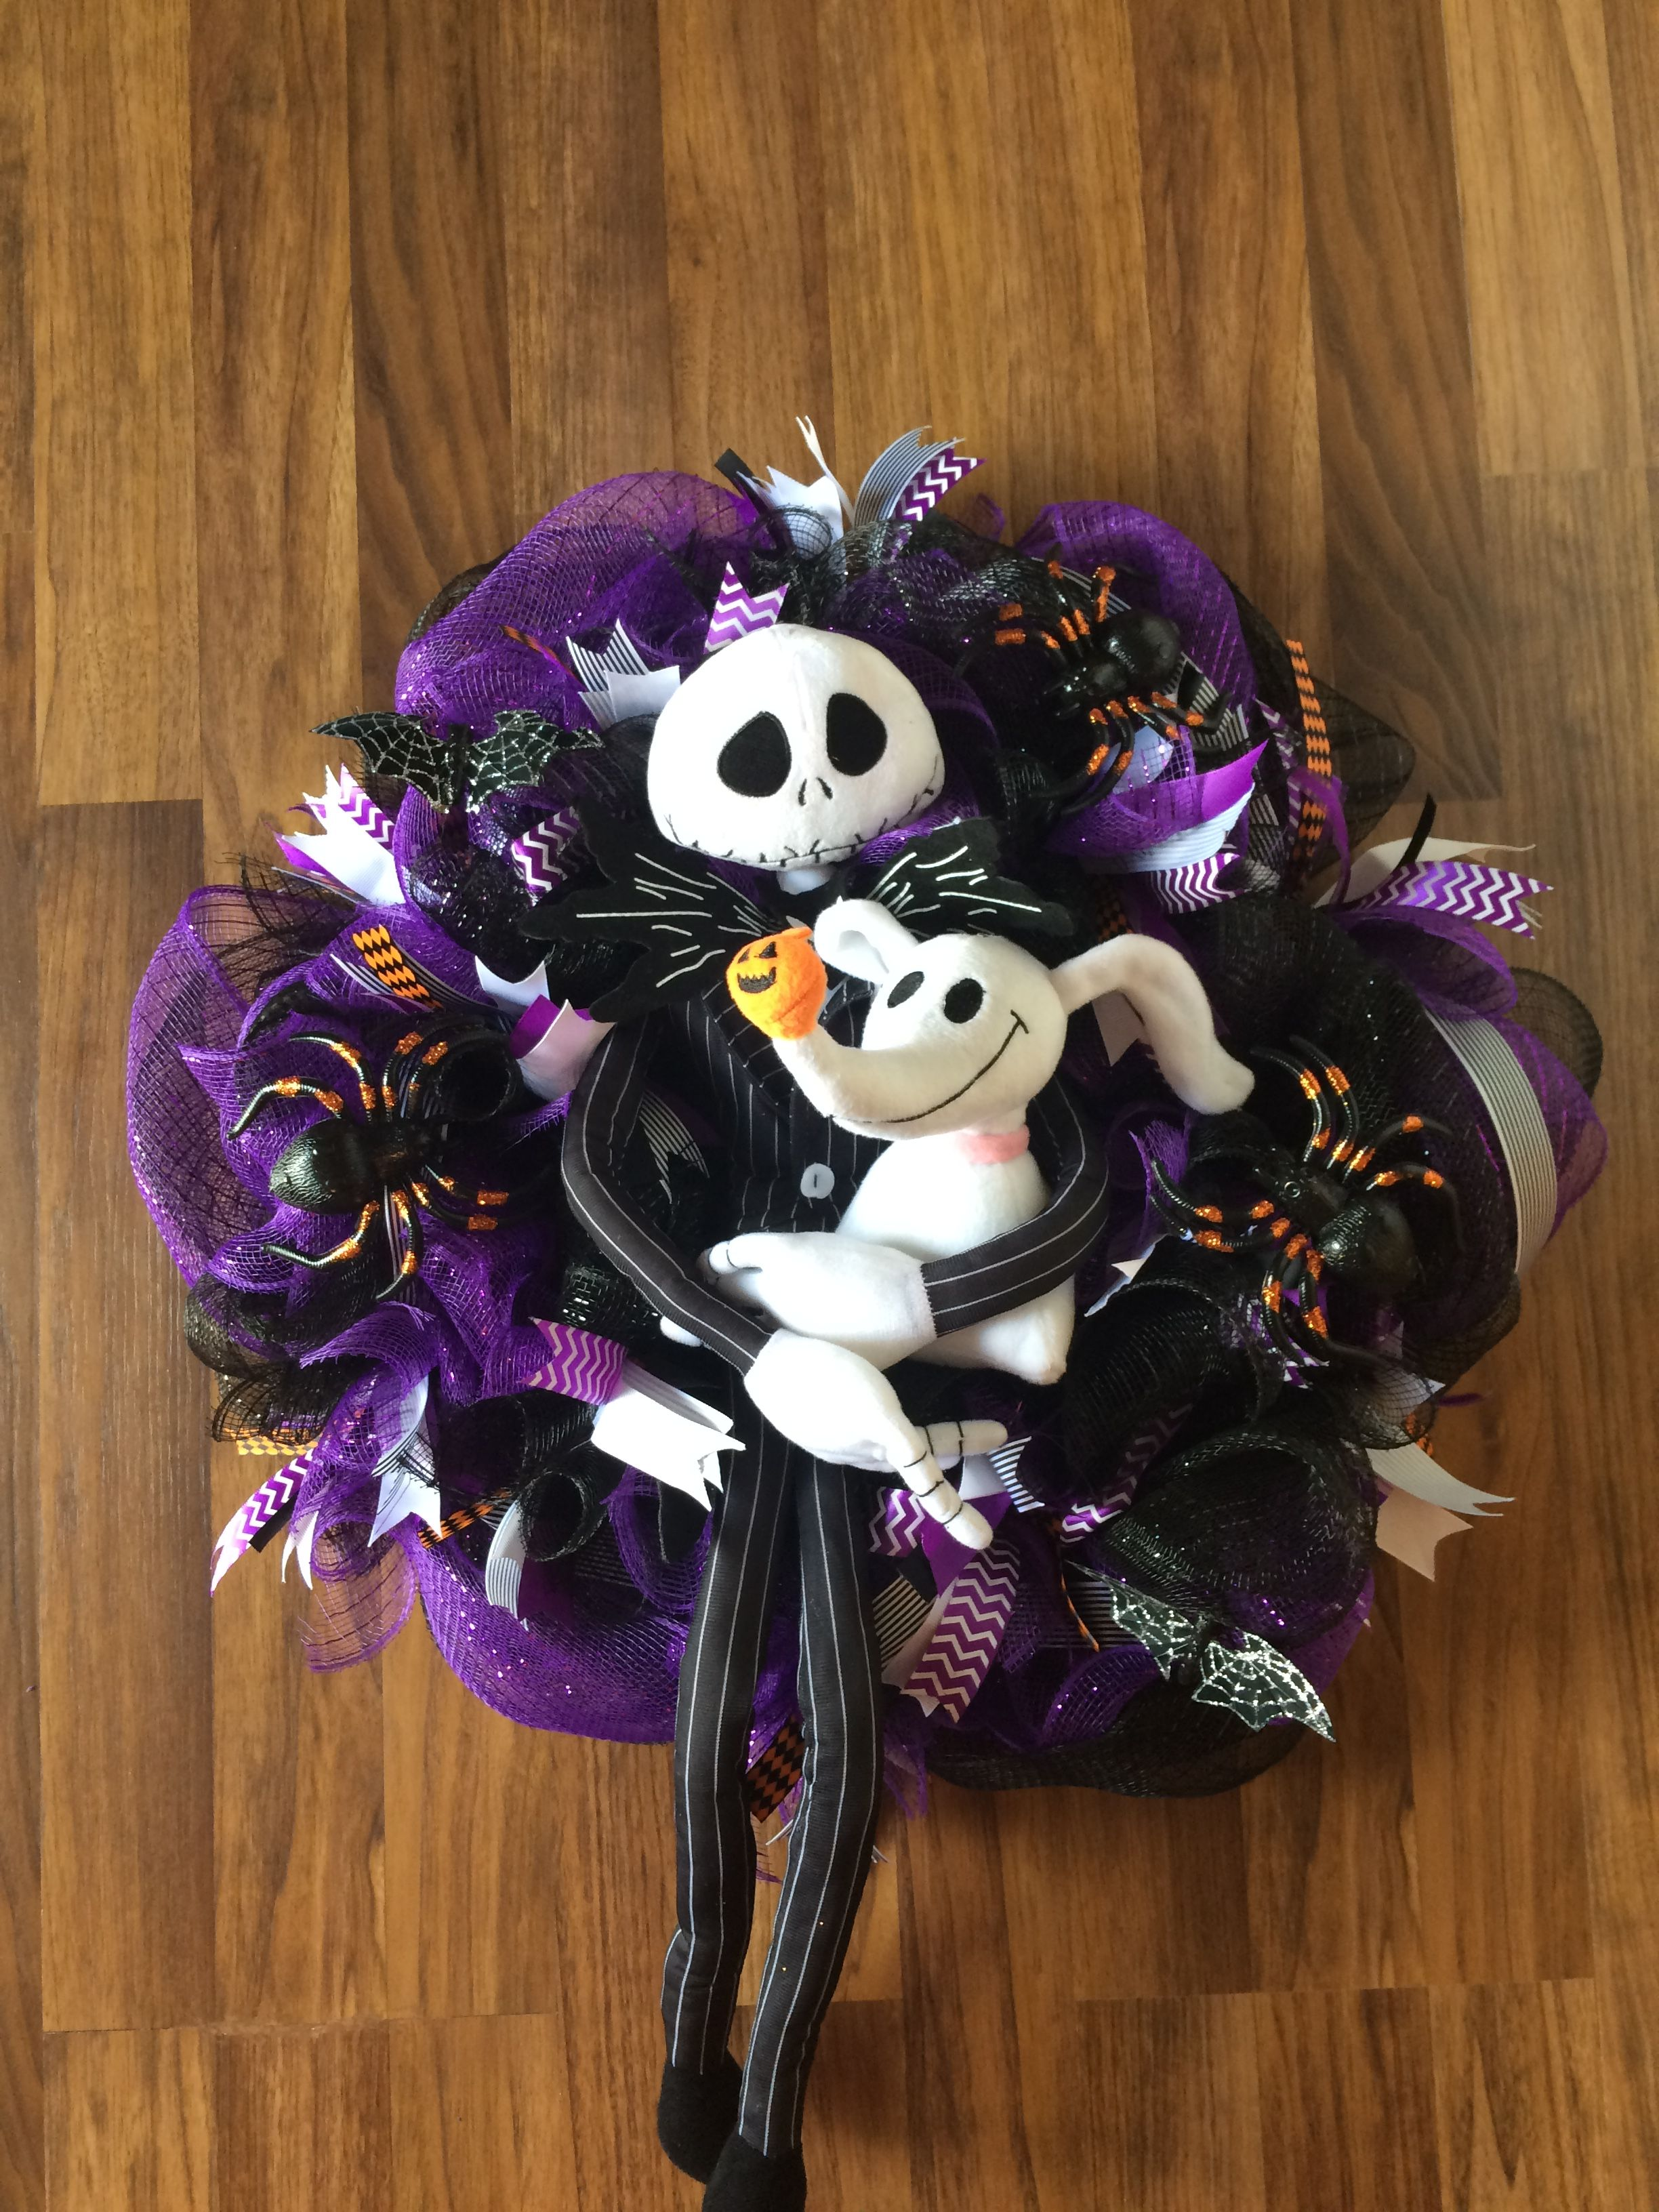 Walgreens Christmas 2019 Jack Skellington and Zero wreath using items from dollar tree